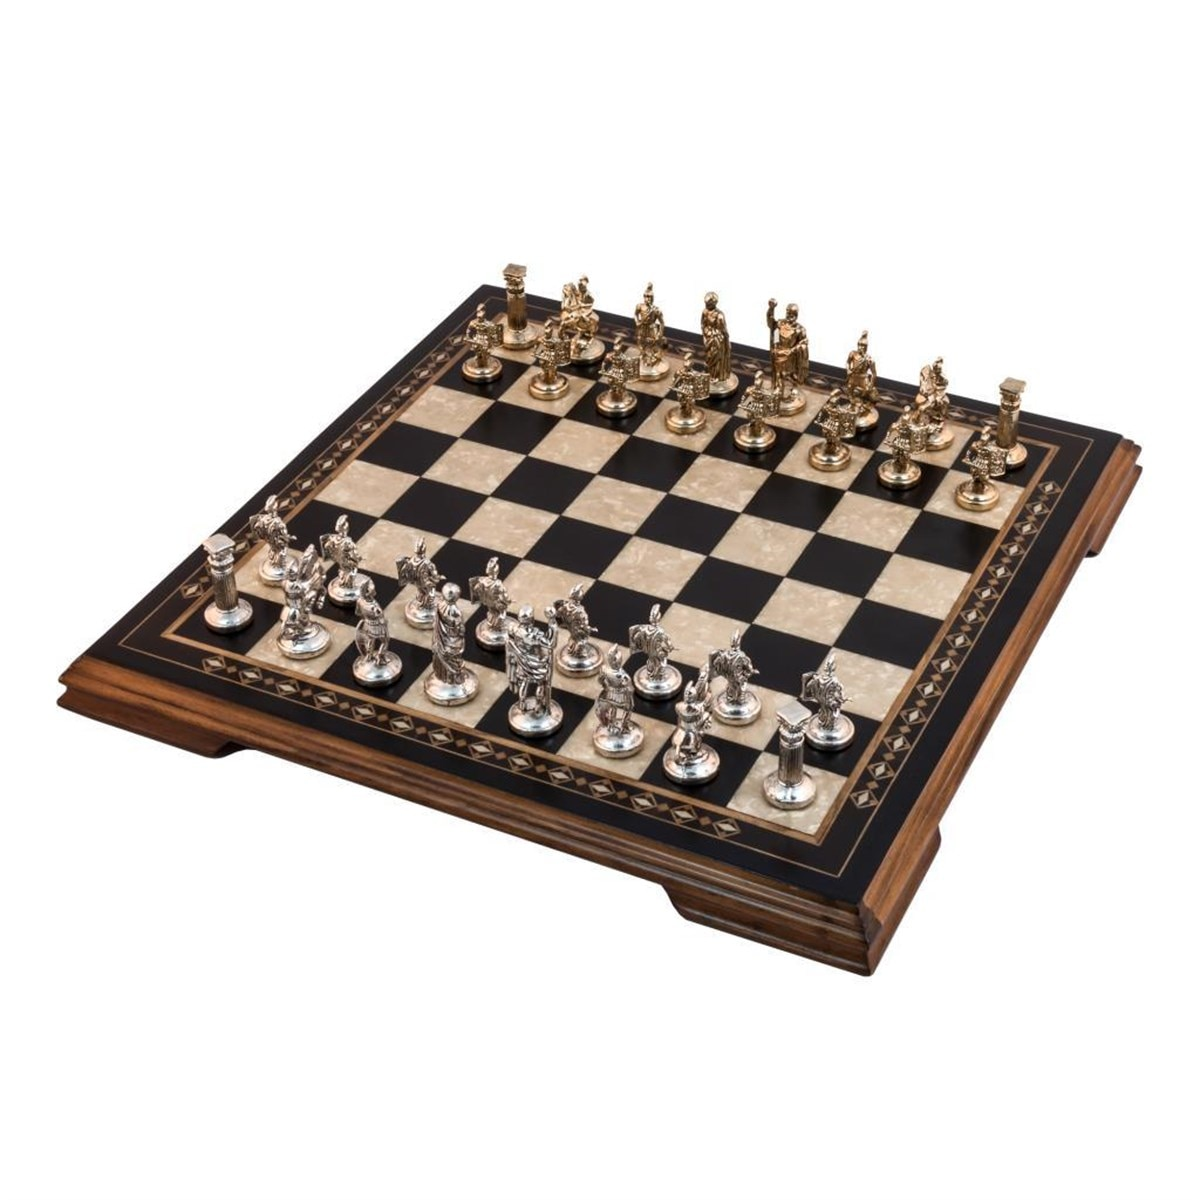 Luxury Black Chess Game Set - Mosaic Engraved Large Solid Wood Chessboard & Metal Figures Checkers - Backgammon - Rummy Gift